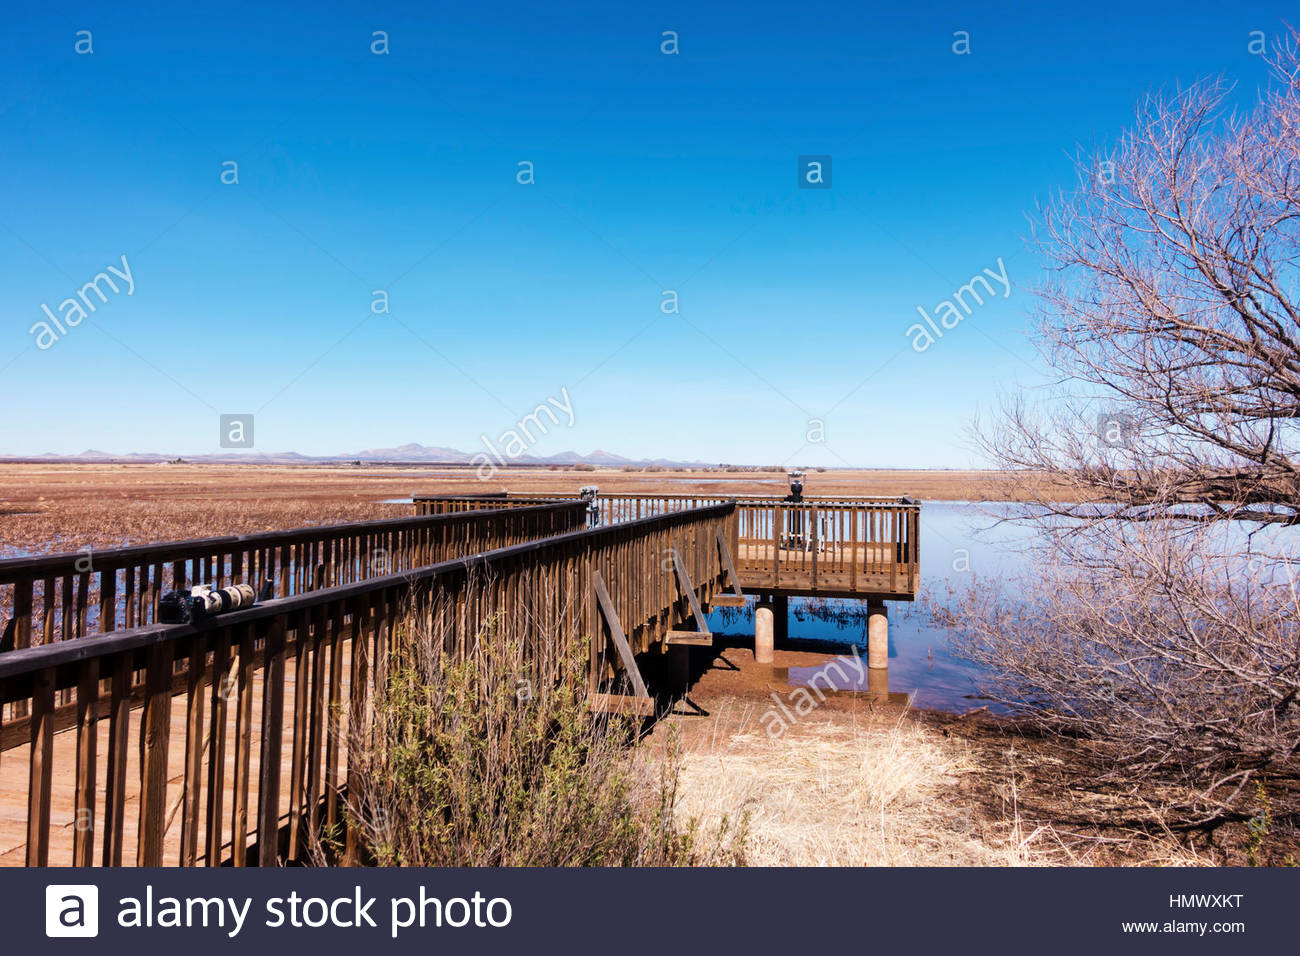 One of the observation decks at Whitewater Draw Wildlife Area in southeastern Arizona - Stock Image